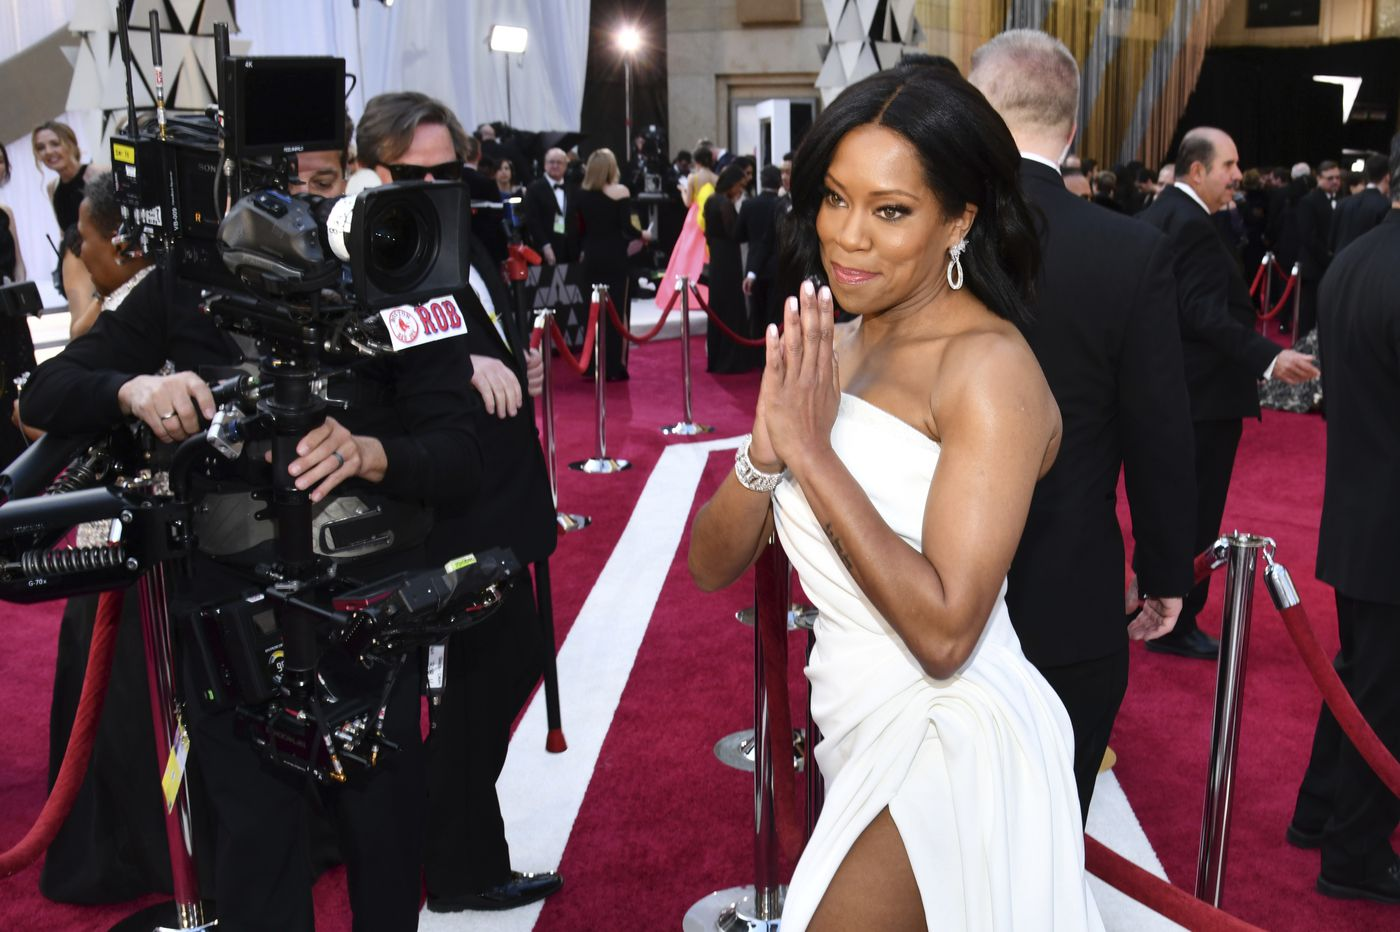 Oscars red carpet: Regina King slays, Lady Gaga disappoints | Elizabeth Wellington